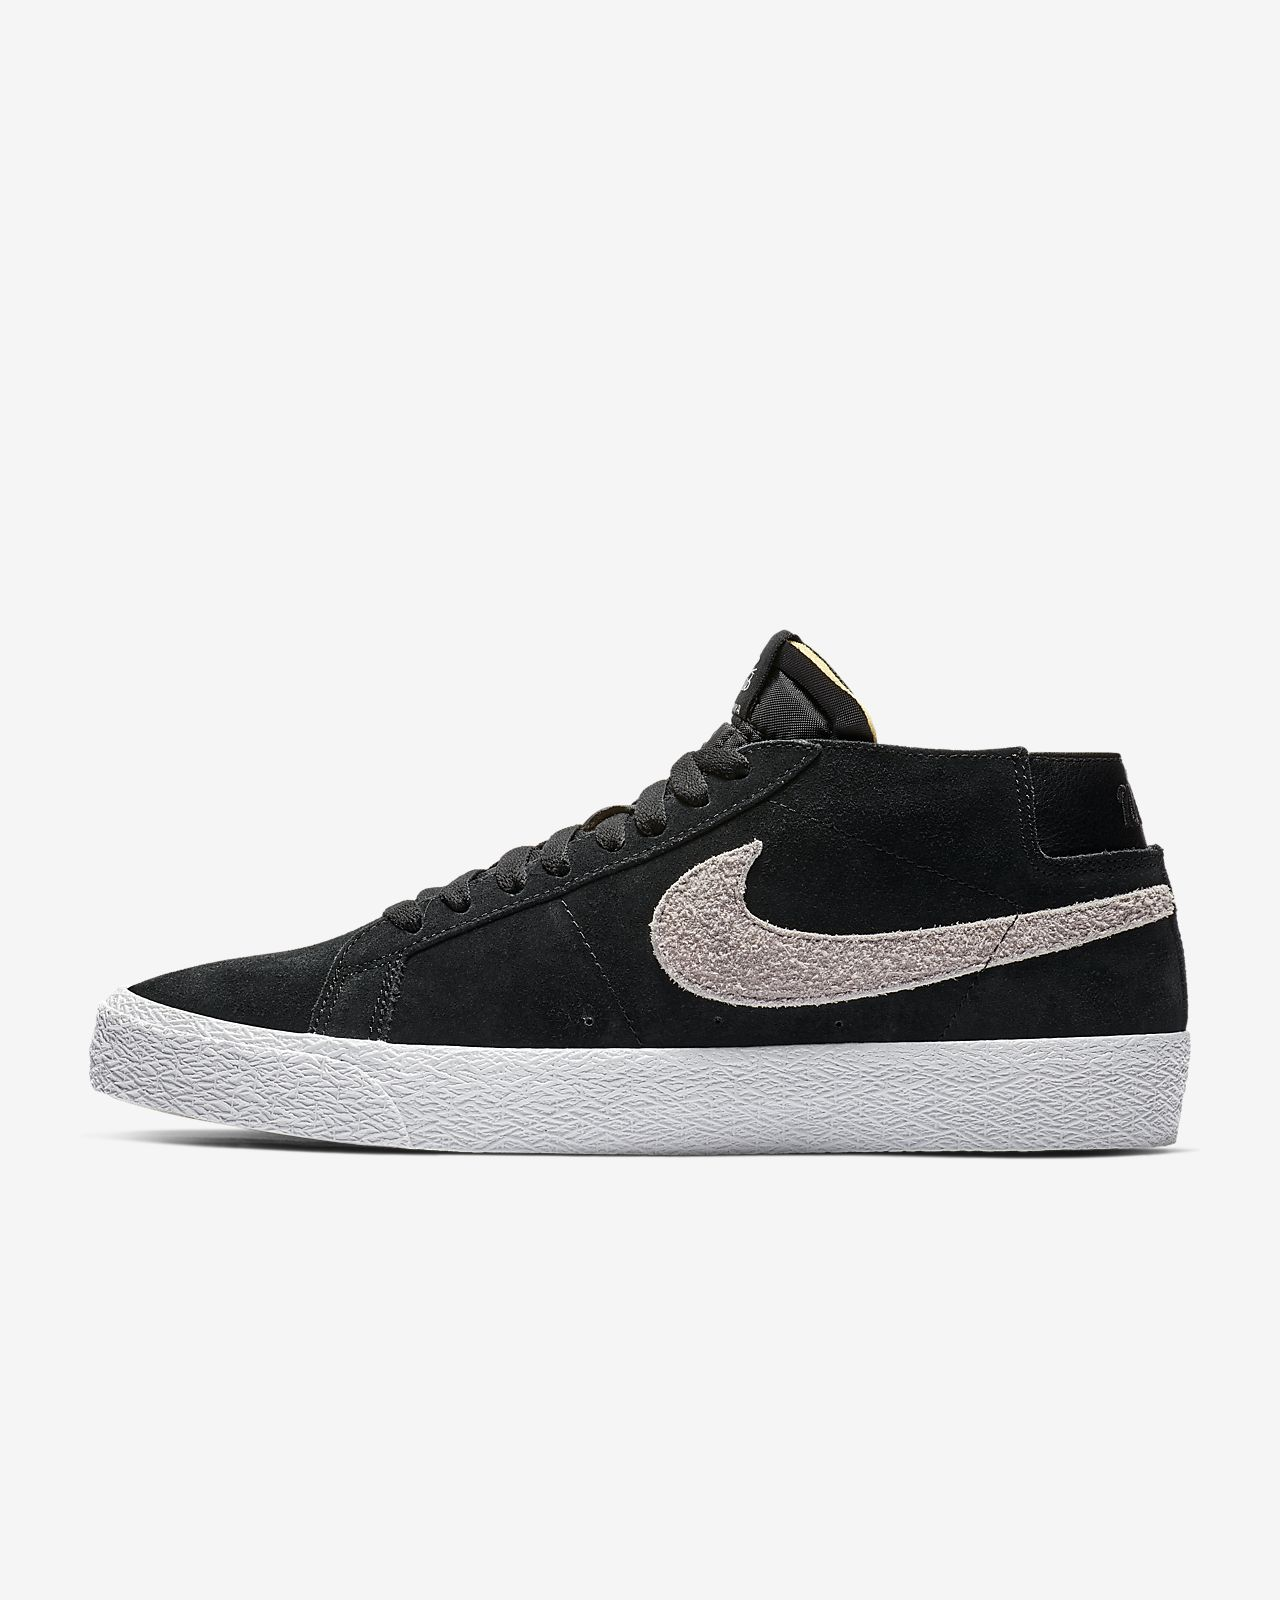 super popular 4b387 dabf4 Nike SB Zoom Blazer Chukka Men's Skate Shoe